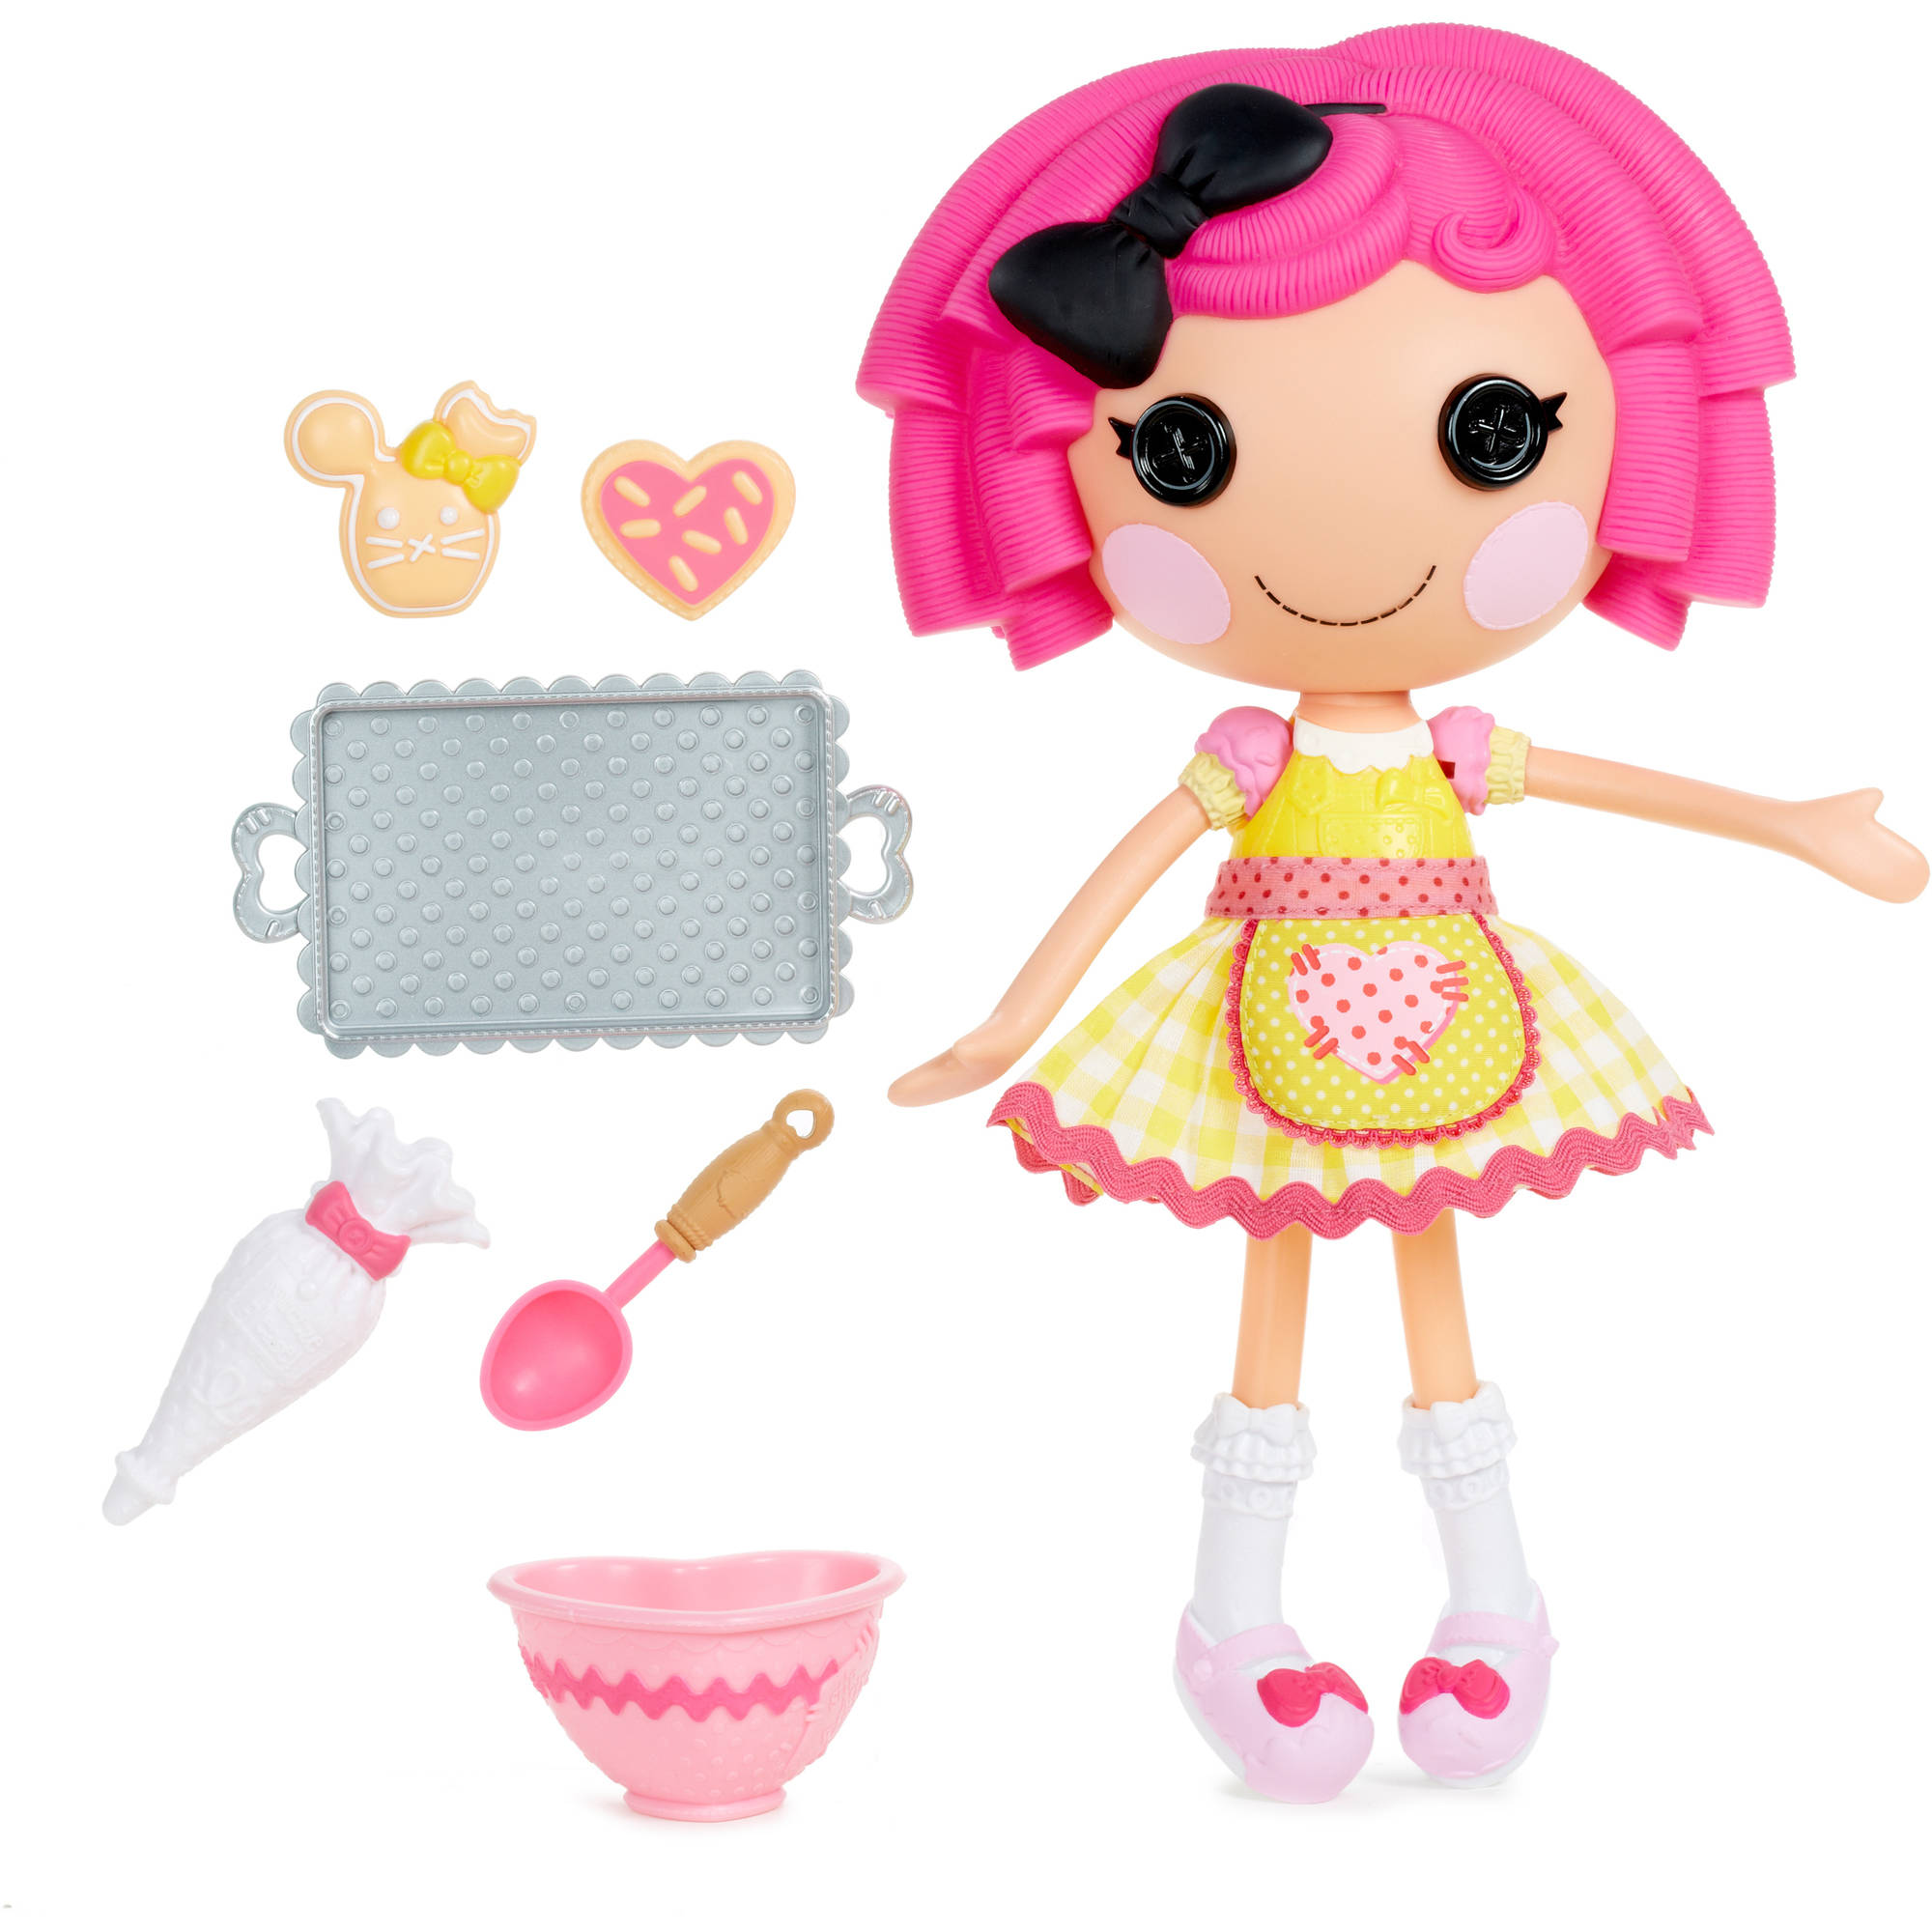 Lalaloopsy Large Doll with Accessories, Crumbs Sugar Cookie